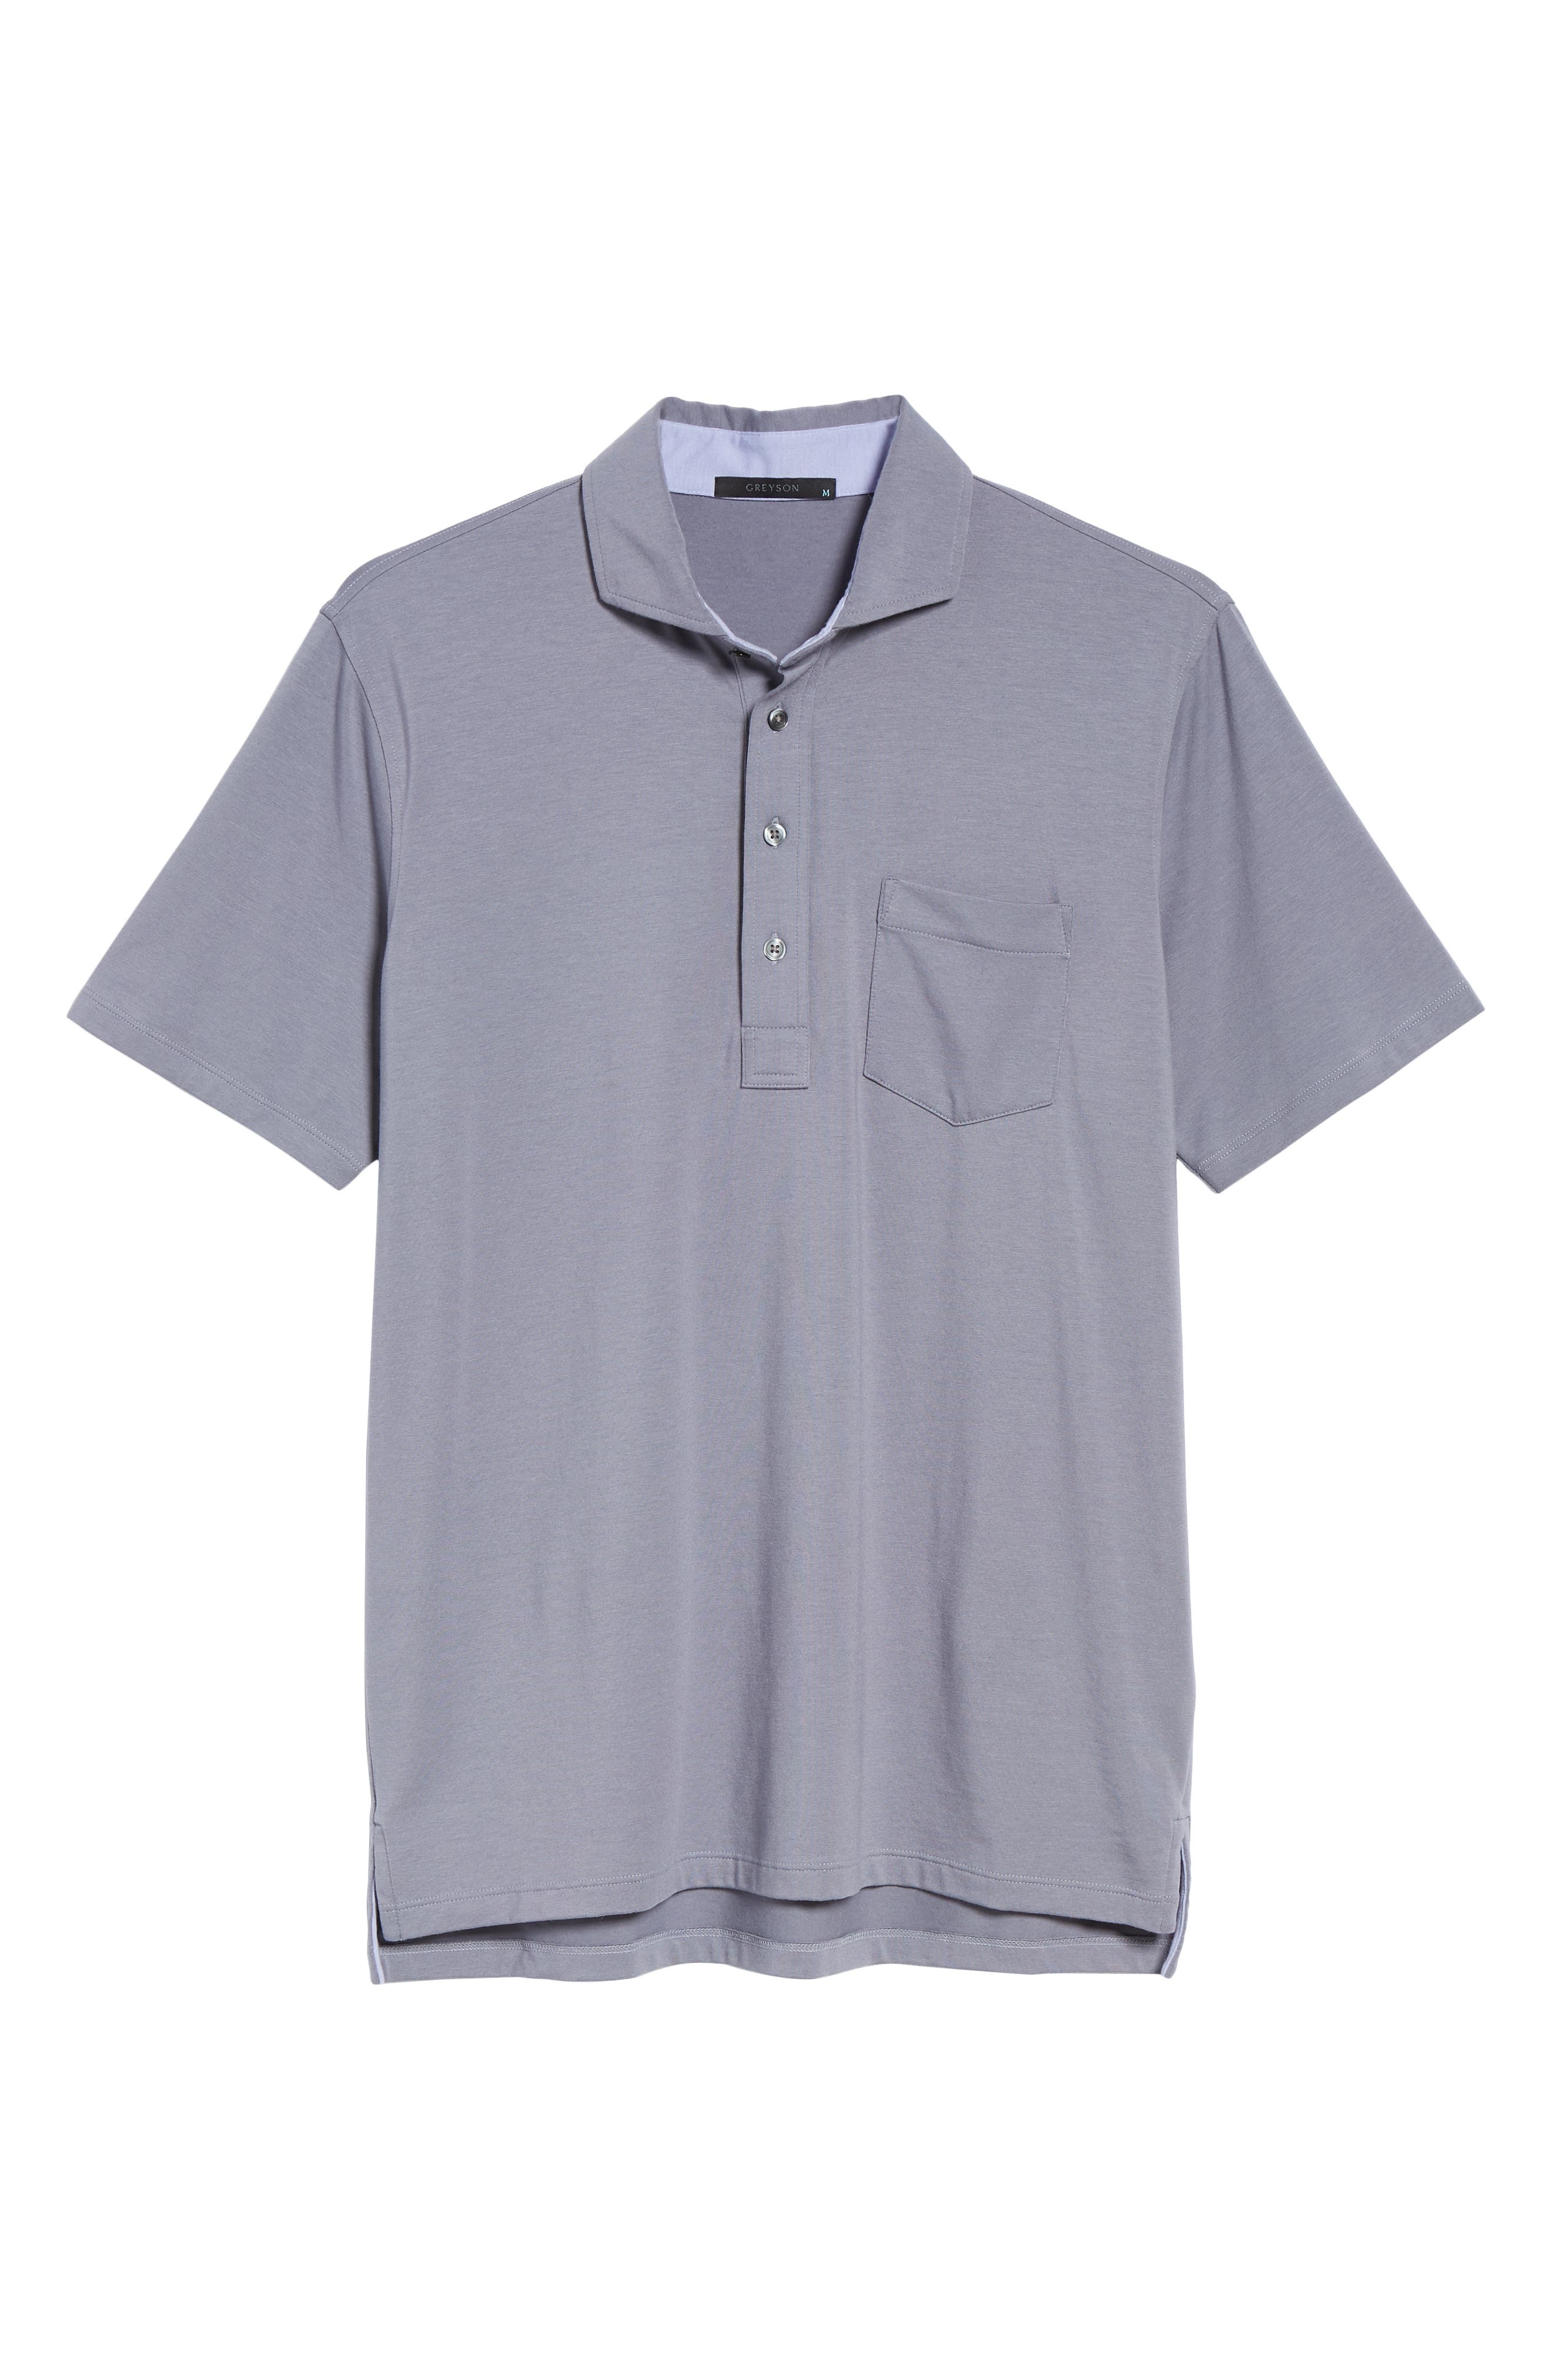 Jersey Polo,                             Alternate thumbnail 6, color,                             STORM